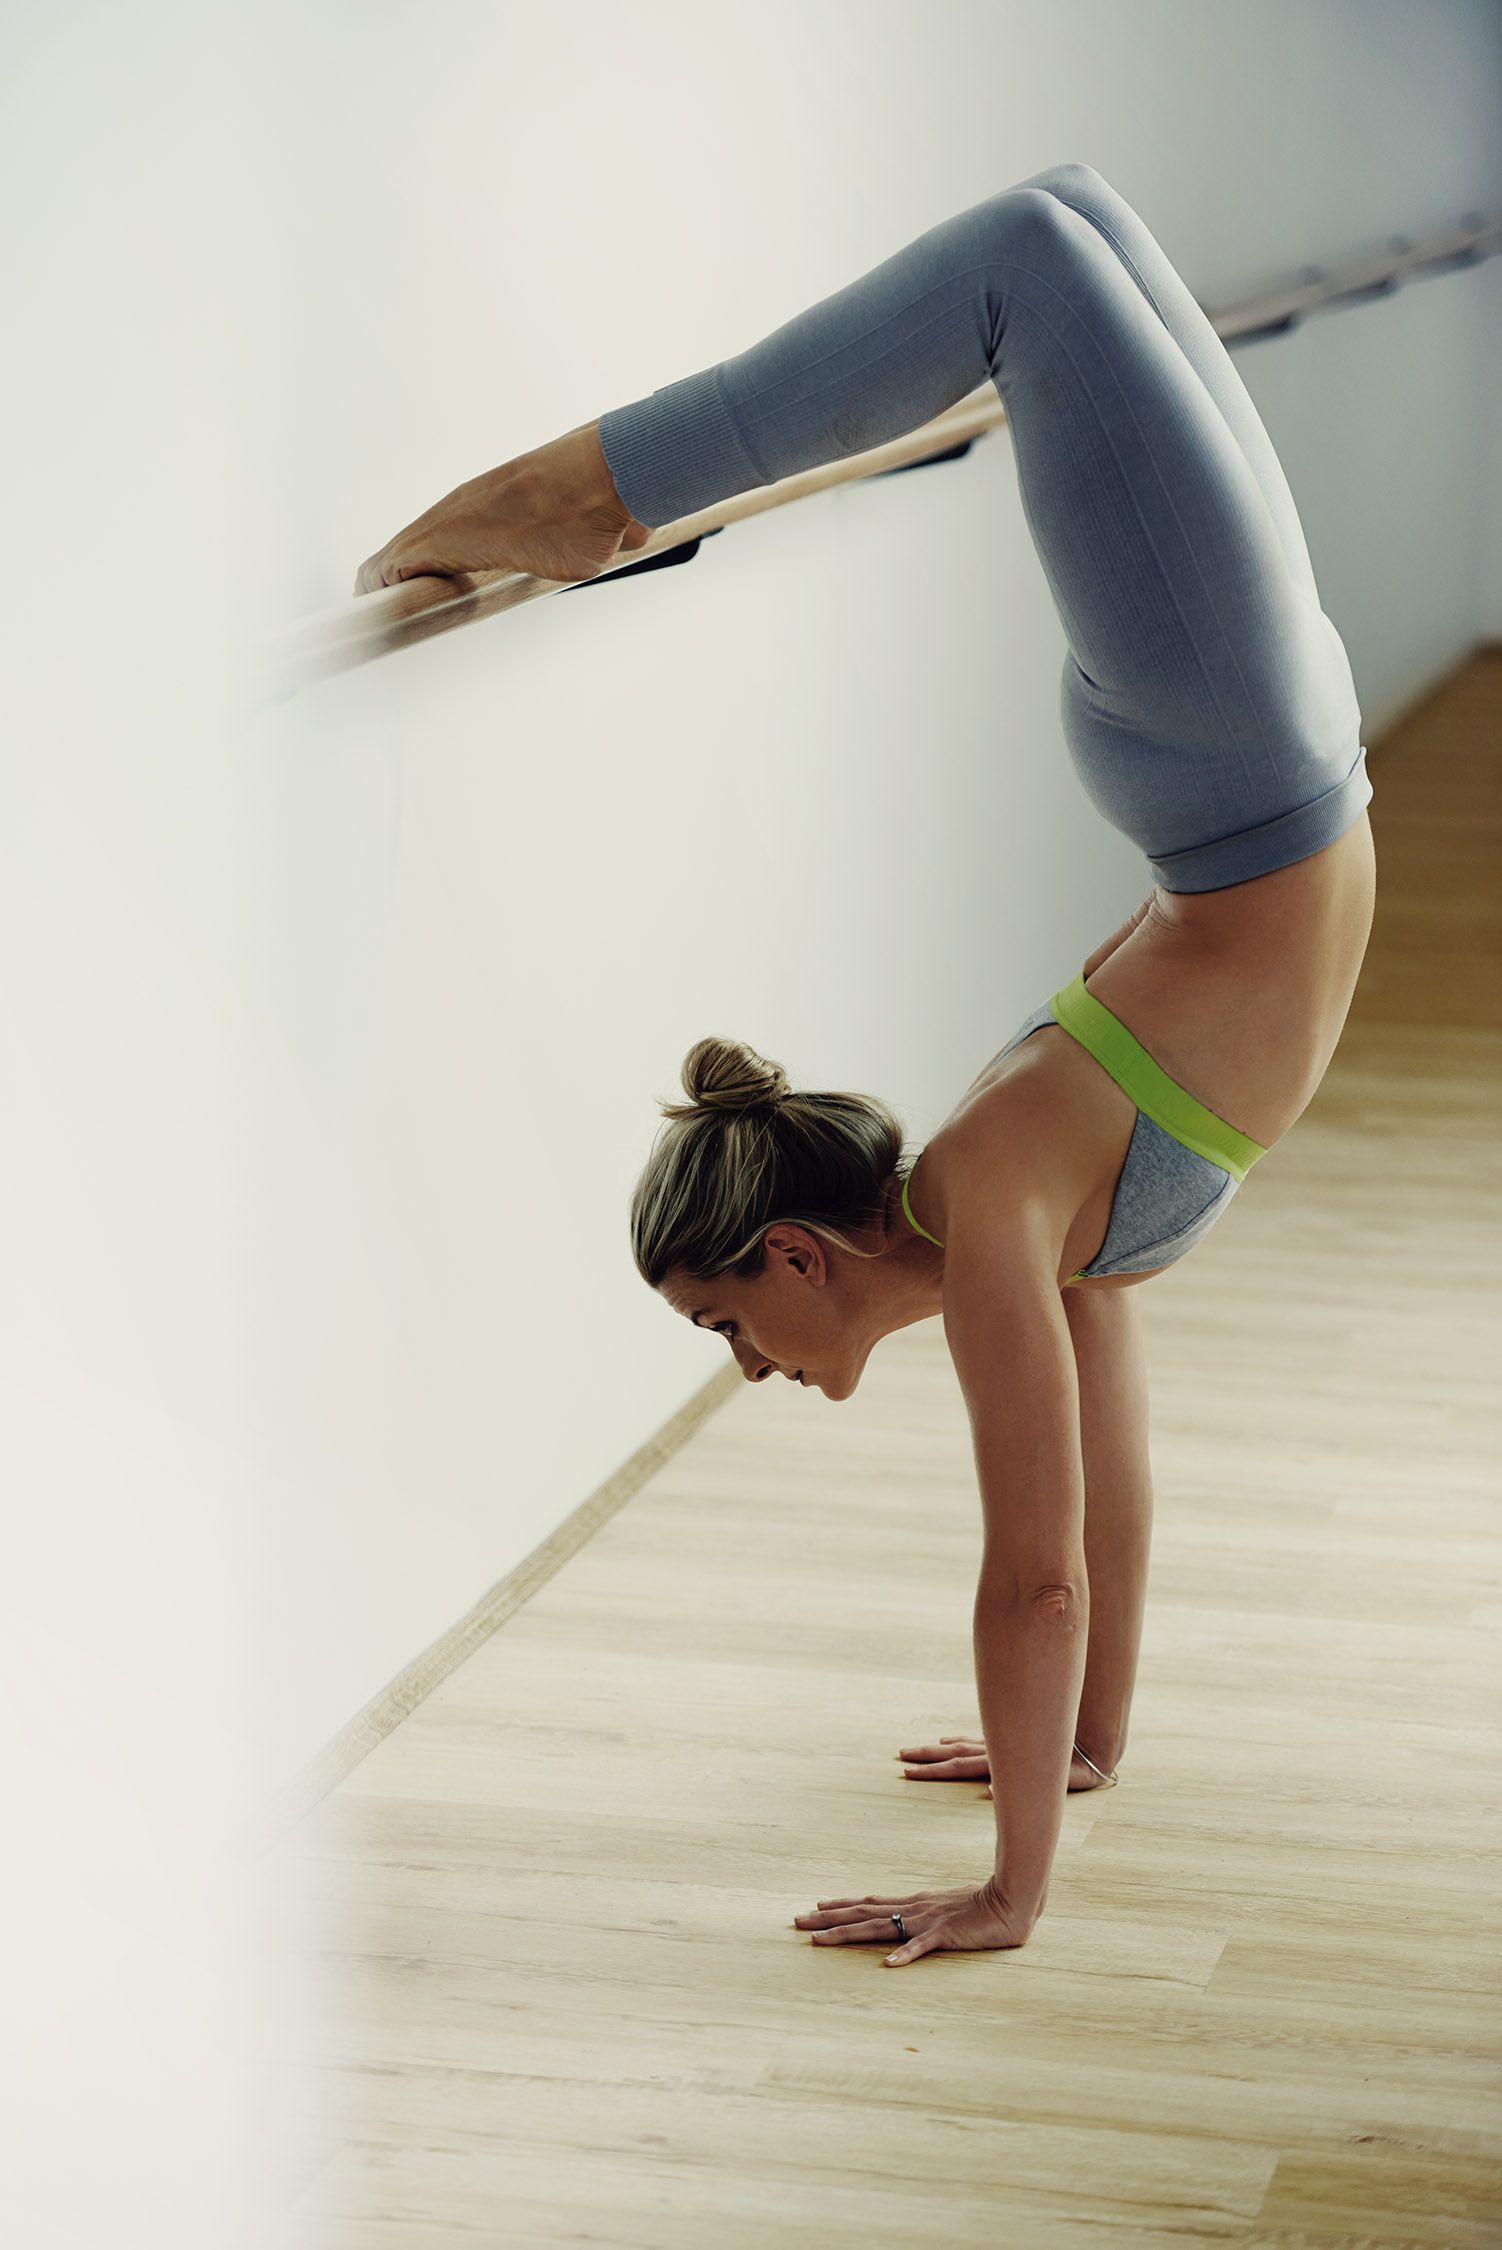 #barrebody #barre #handstand | fitness | Barre body ...